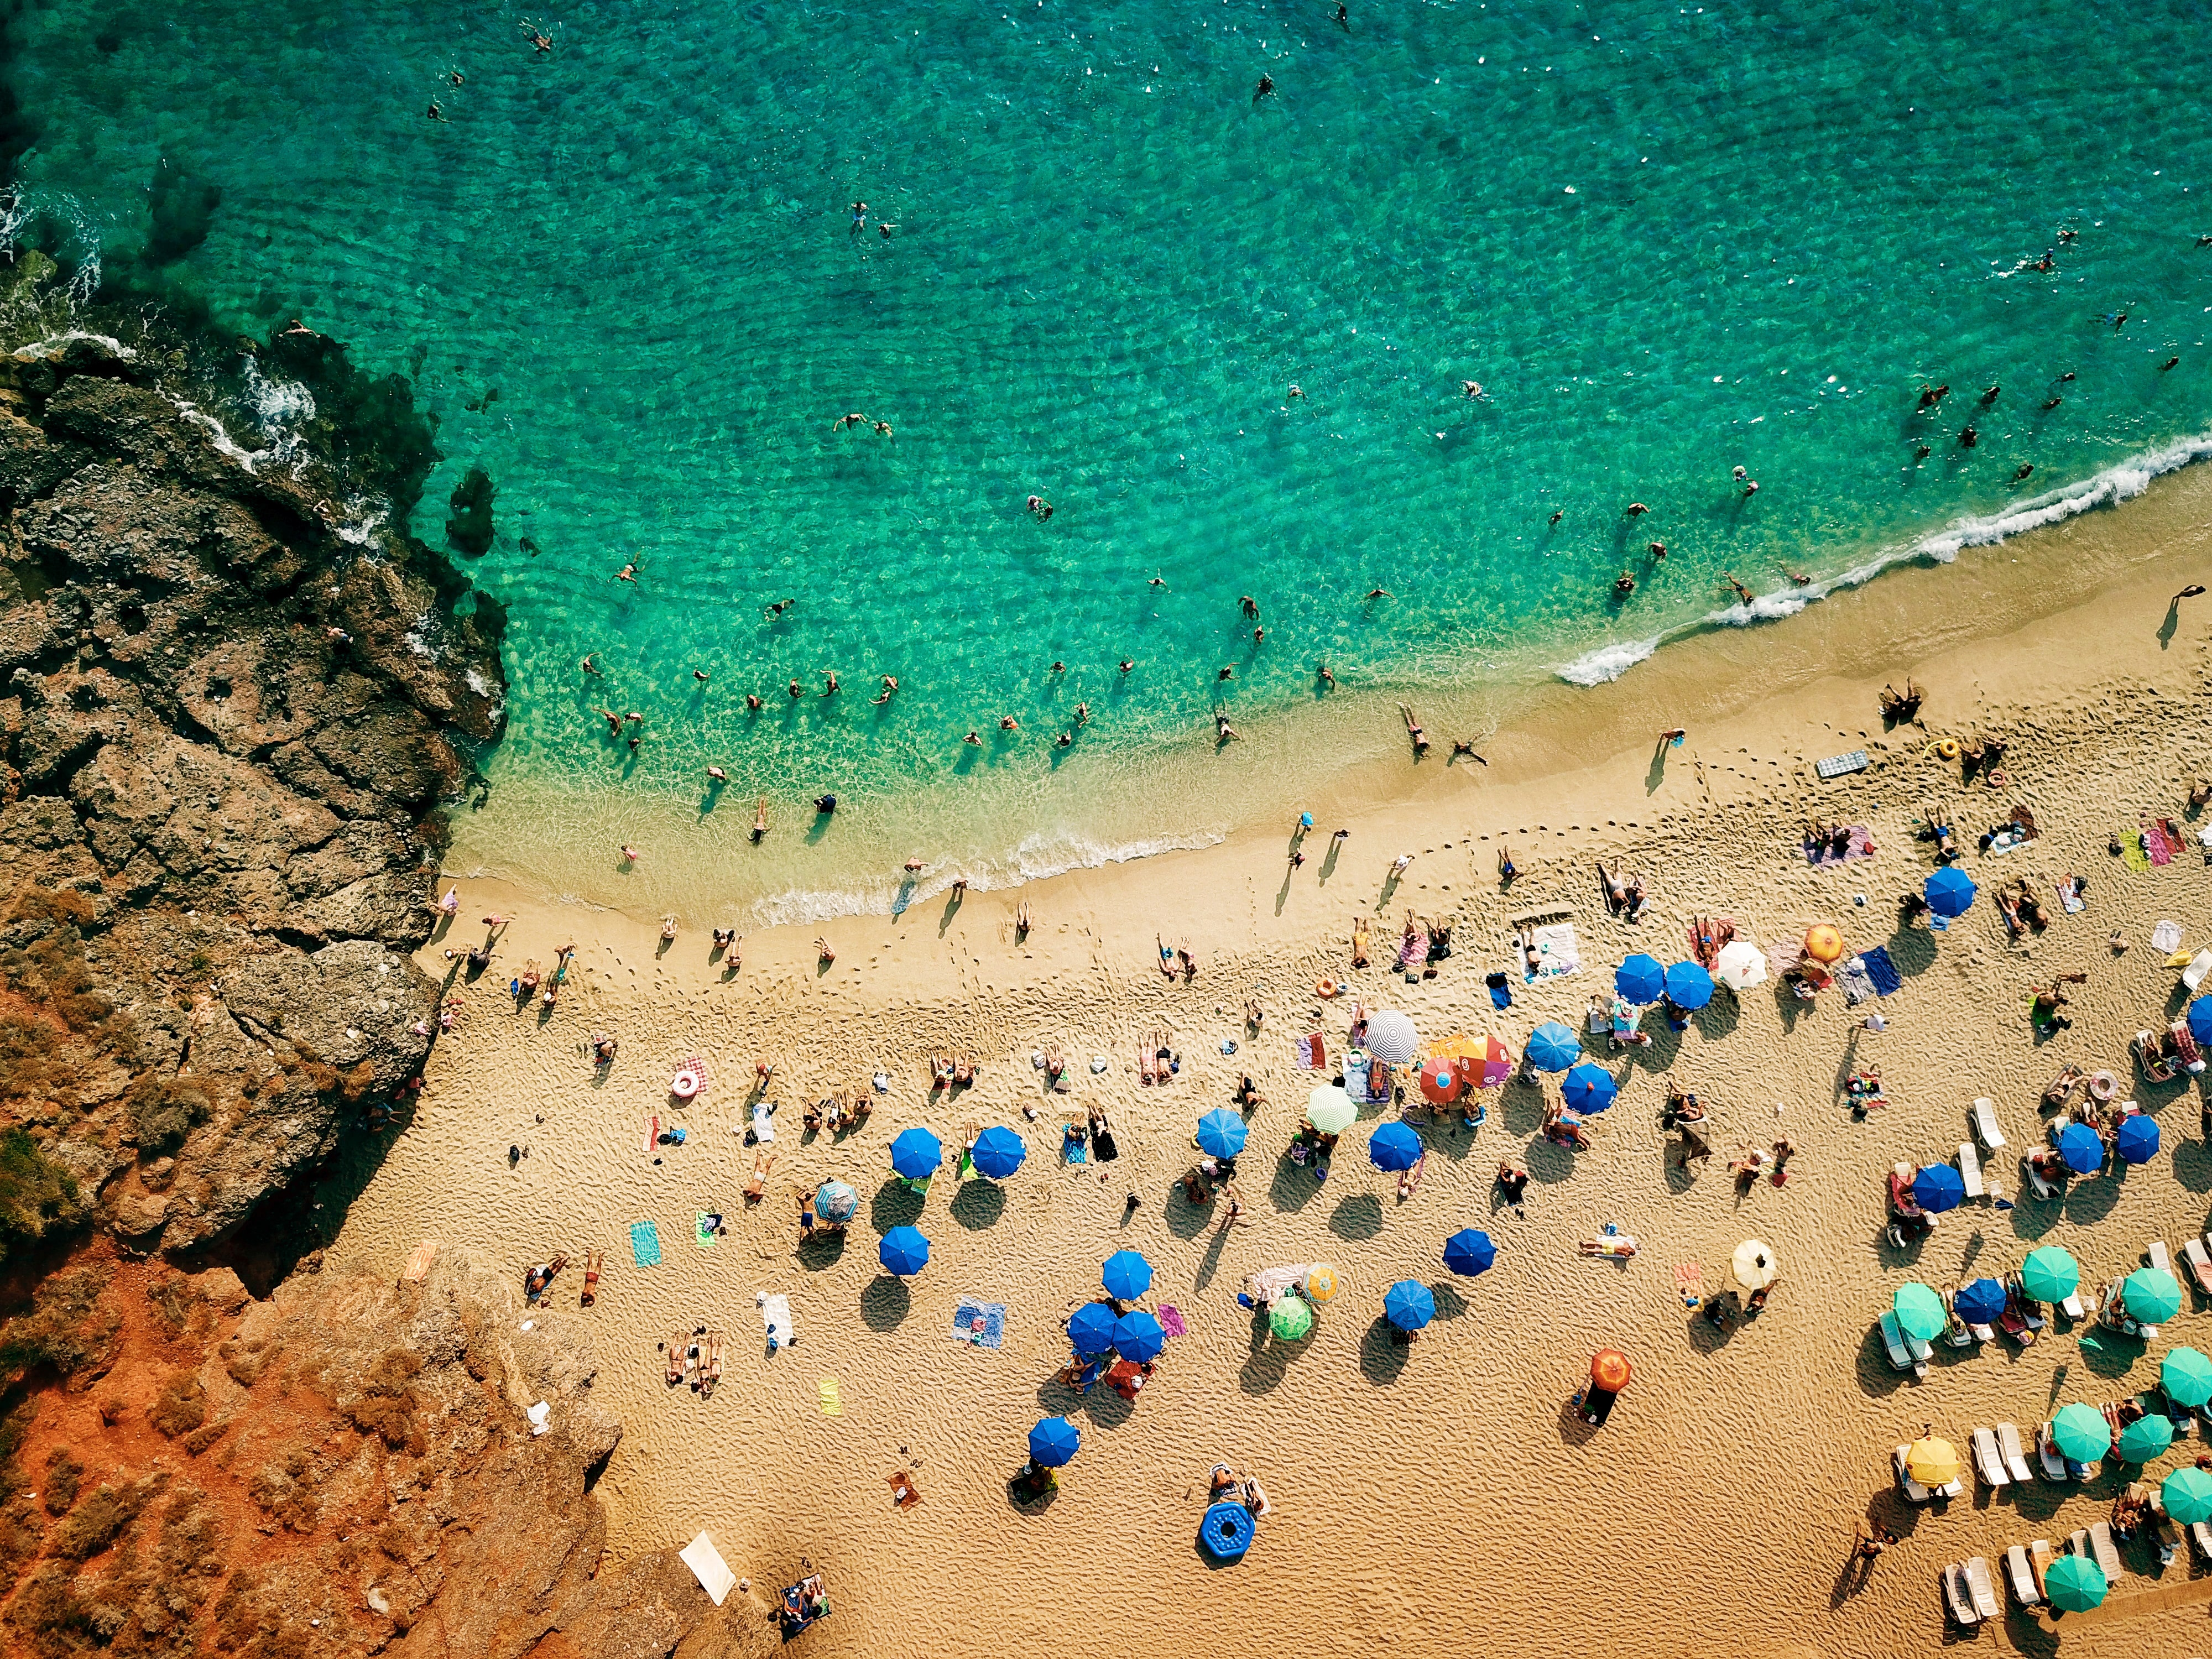 aerial view photography of people on seashore during daytime